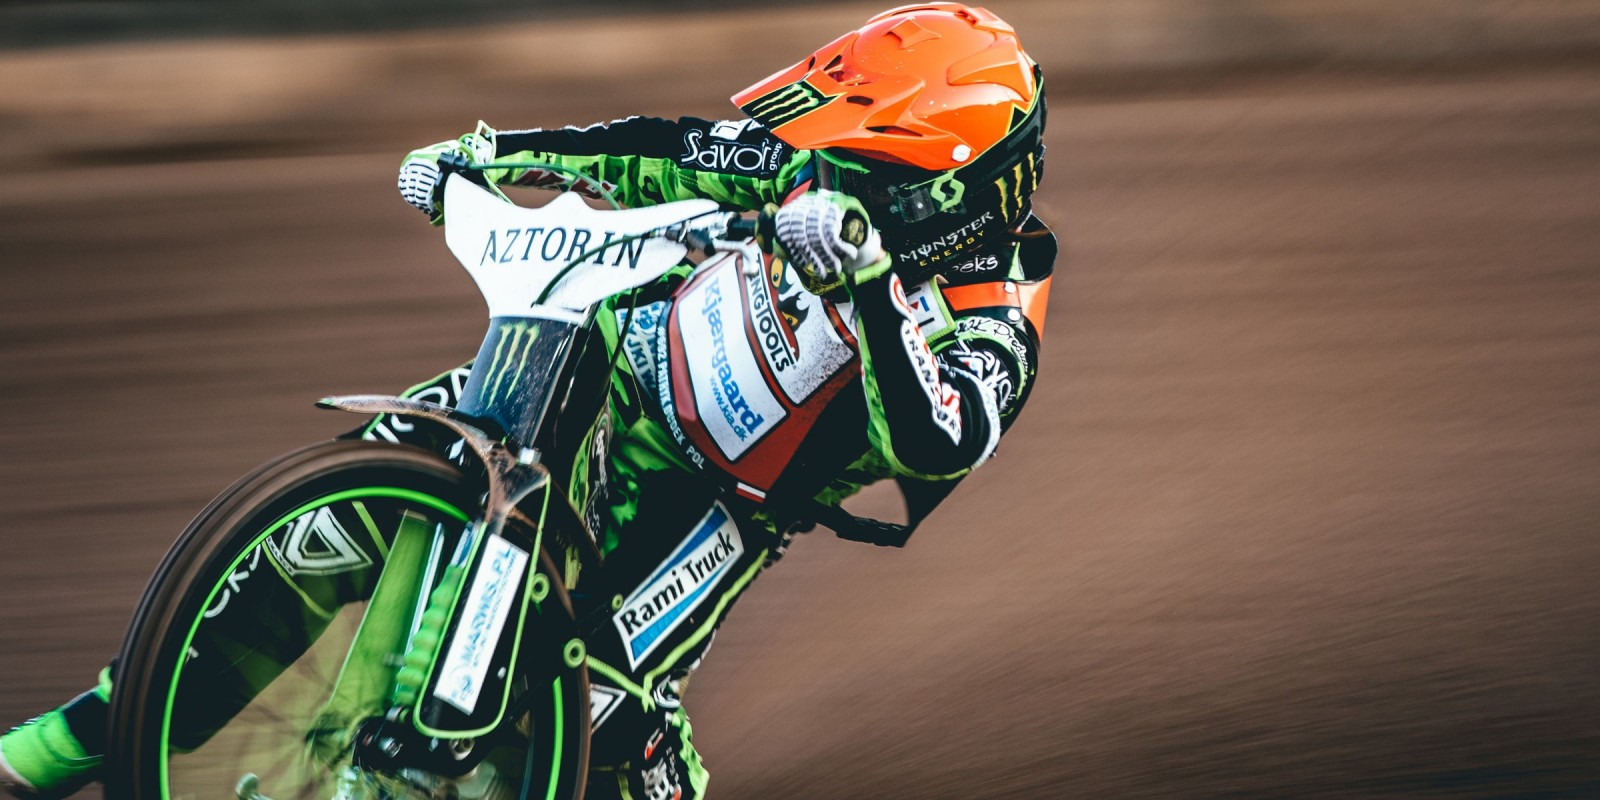 Images from the opening round of the 2017 SGP season in Krsko, Slovenia